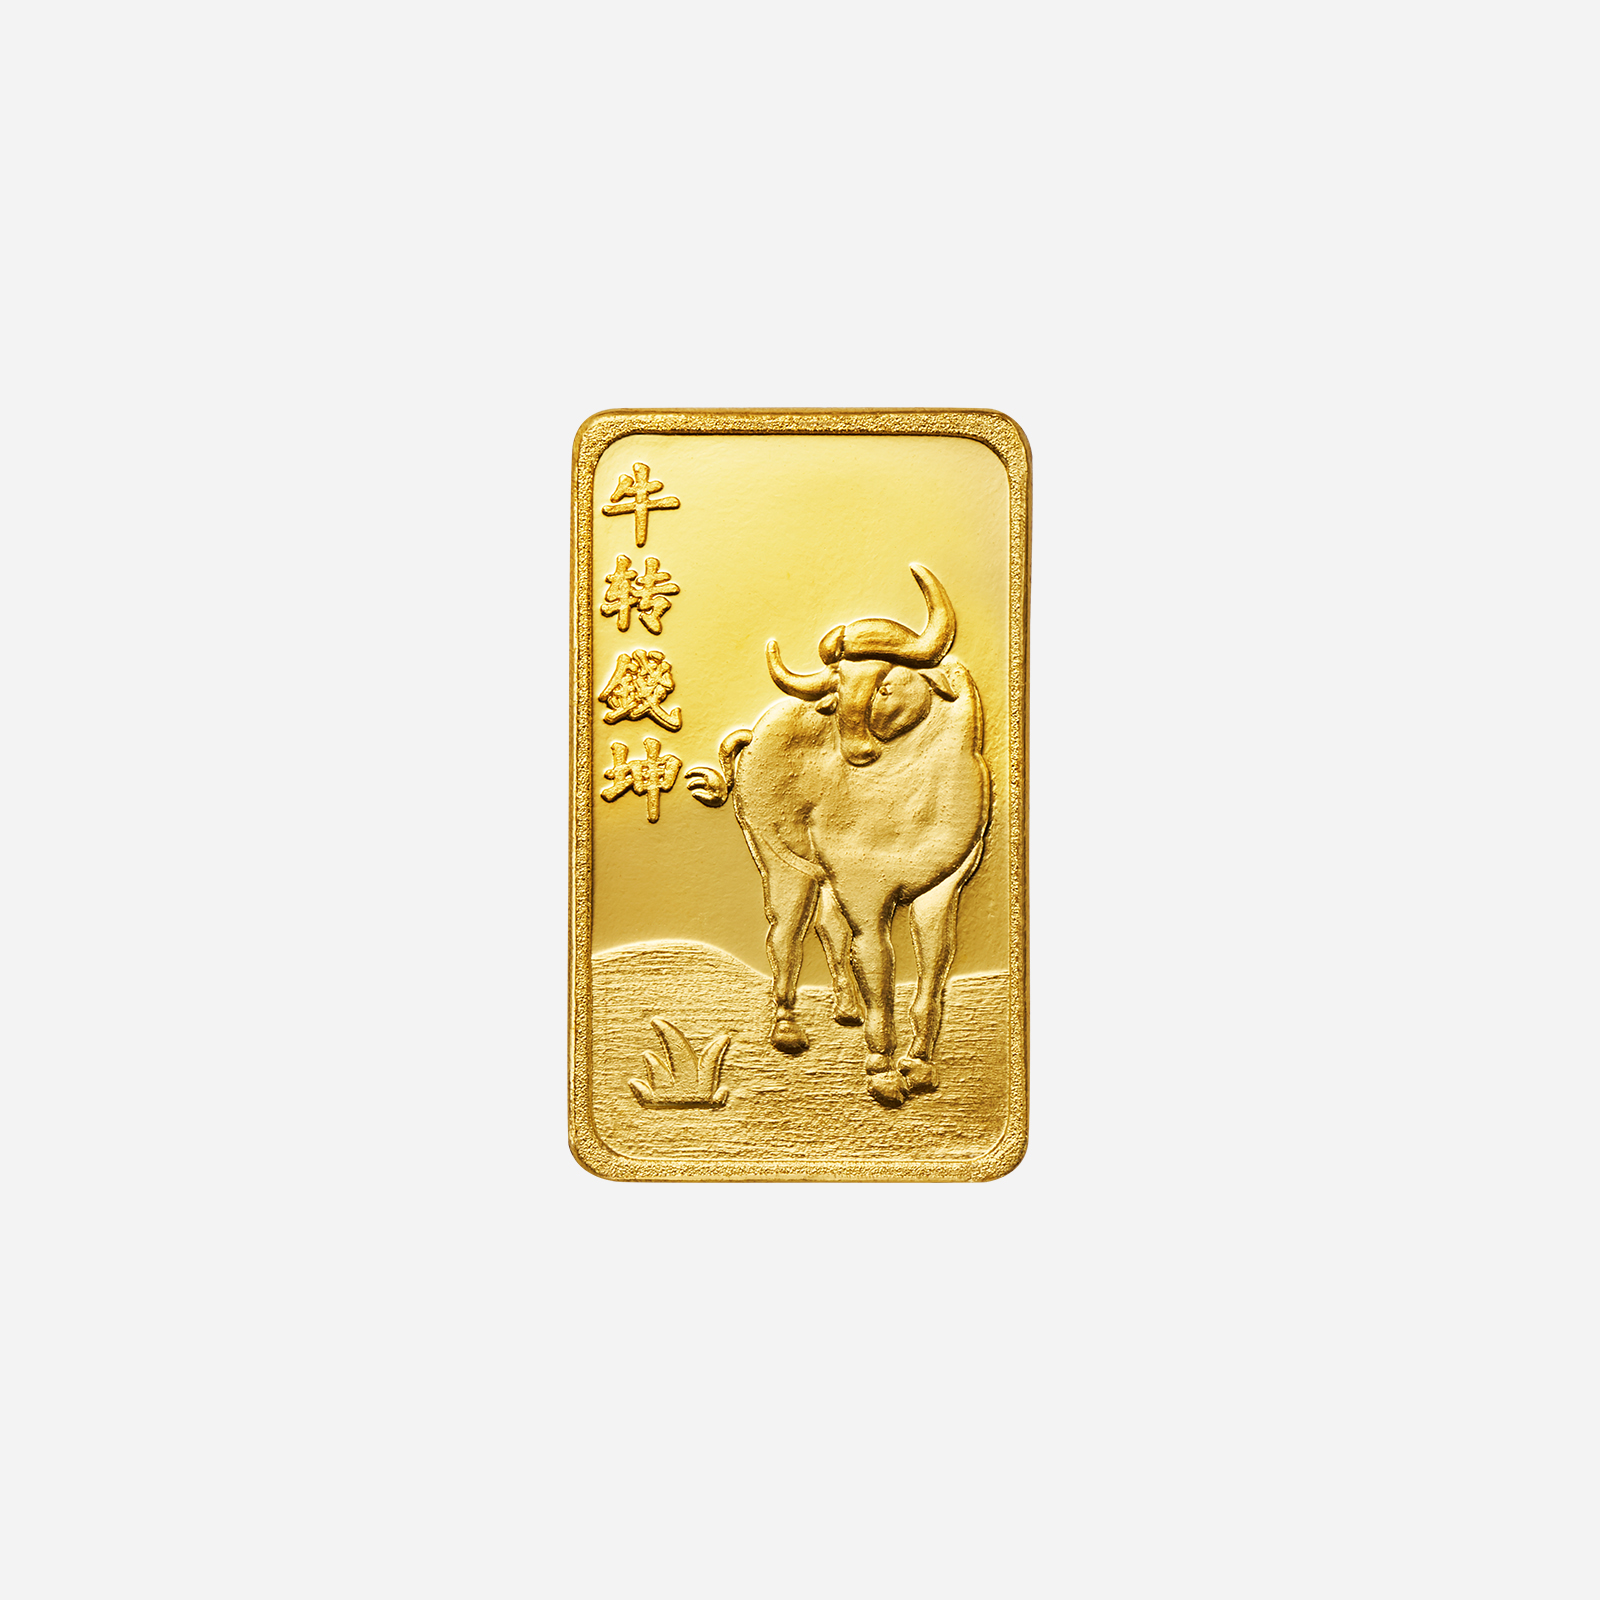 Year of the Ox 2.5gm Gold Bar